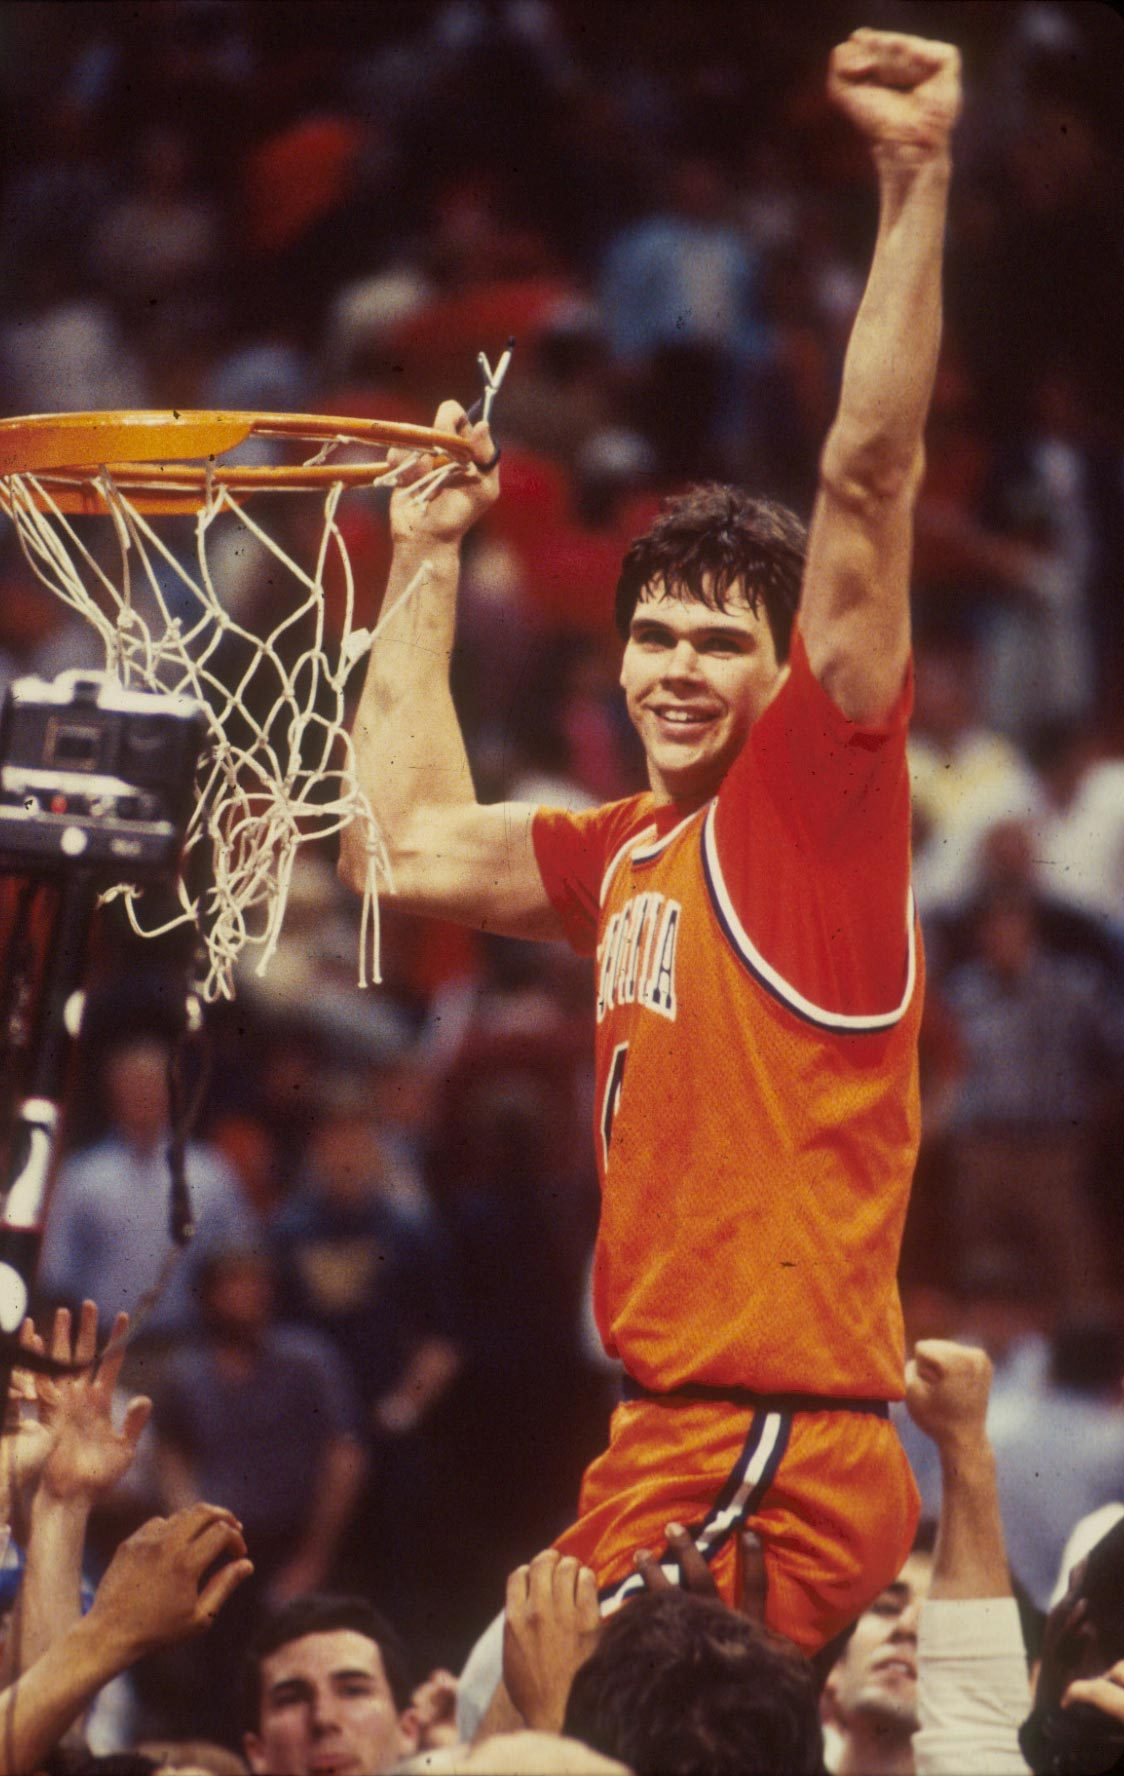 Miller was the East Region MVP during UVA's surprising run to the 1984 Final Four.